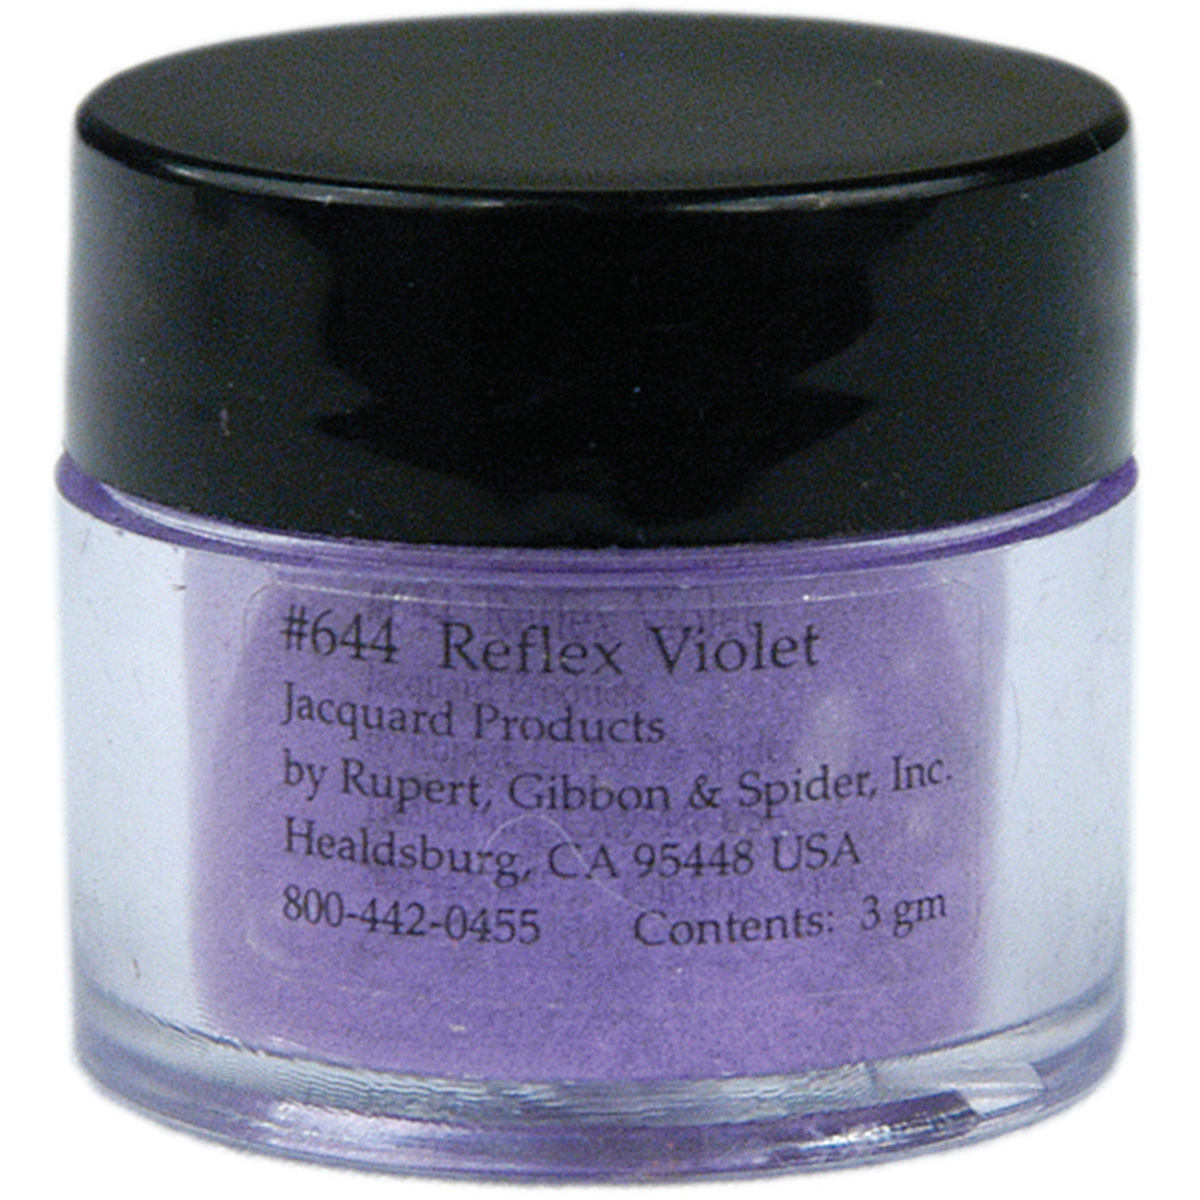 Jacquard Pearl EX Powdered Pigments 3 Grams-Reflex Violet Multi-Colored